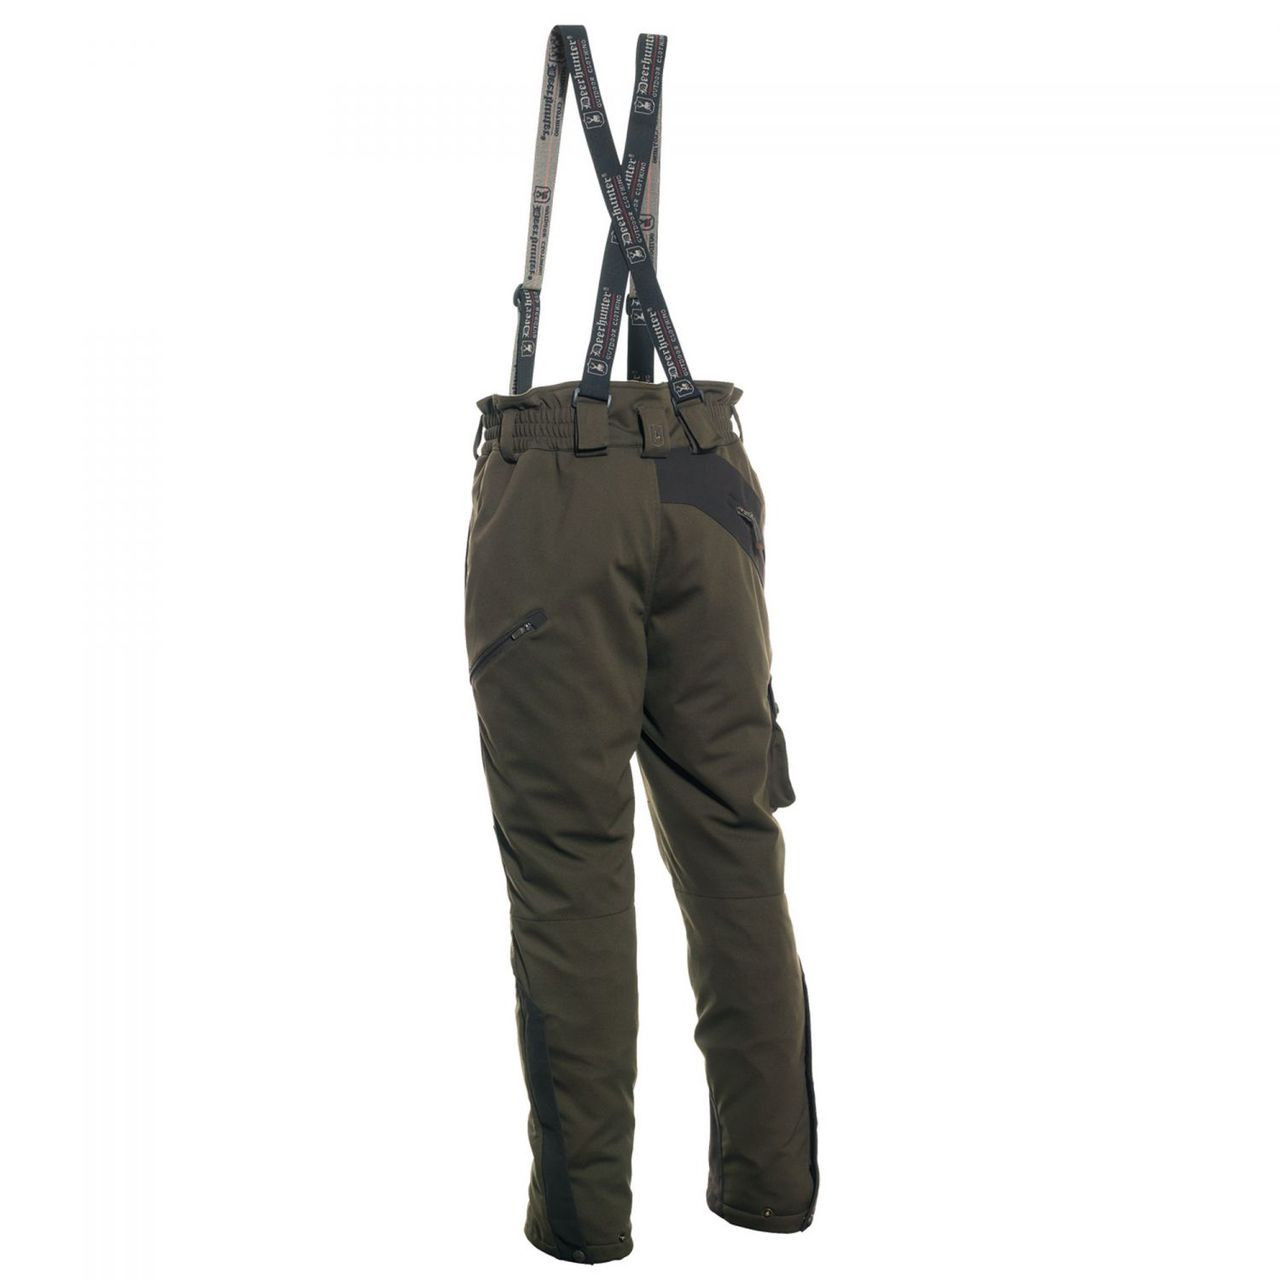 Deerhunter Muflon Trousers